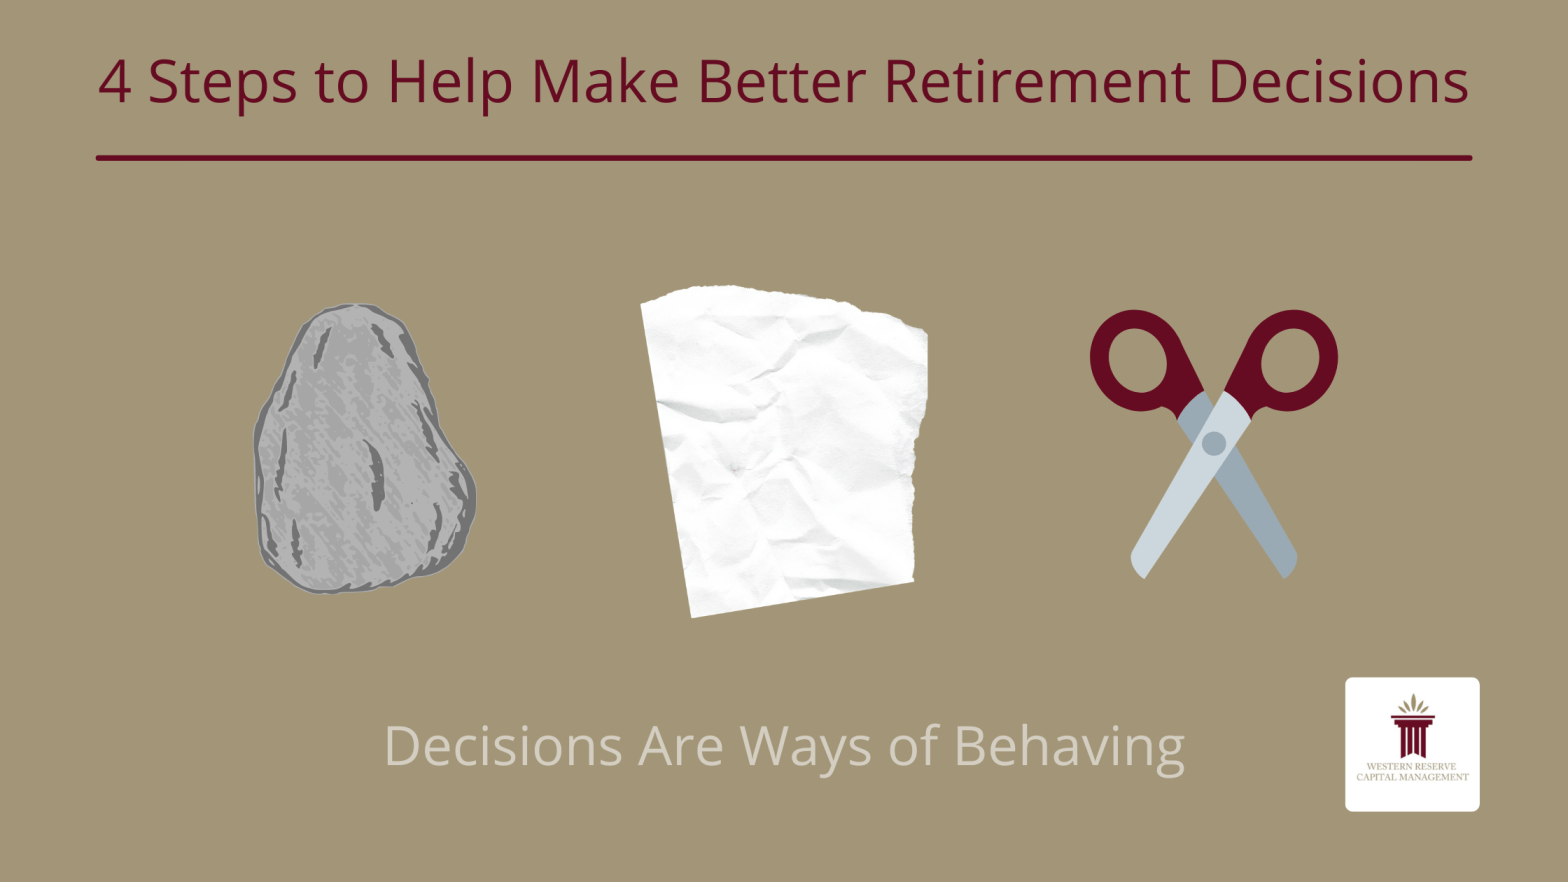 4 Steps to Help Make Better Retirement Decisions